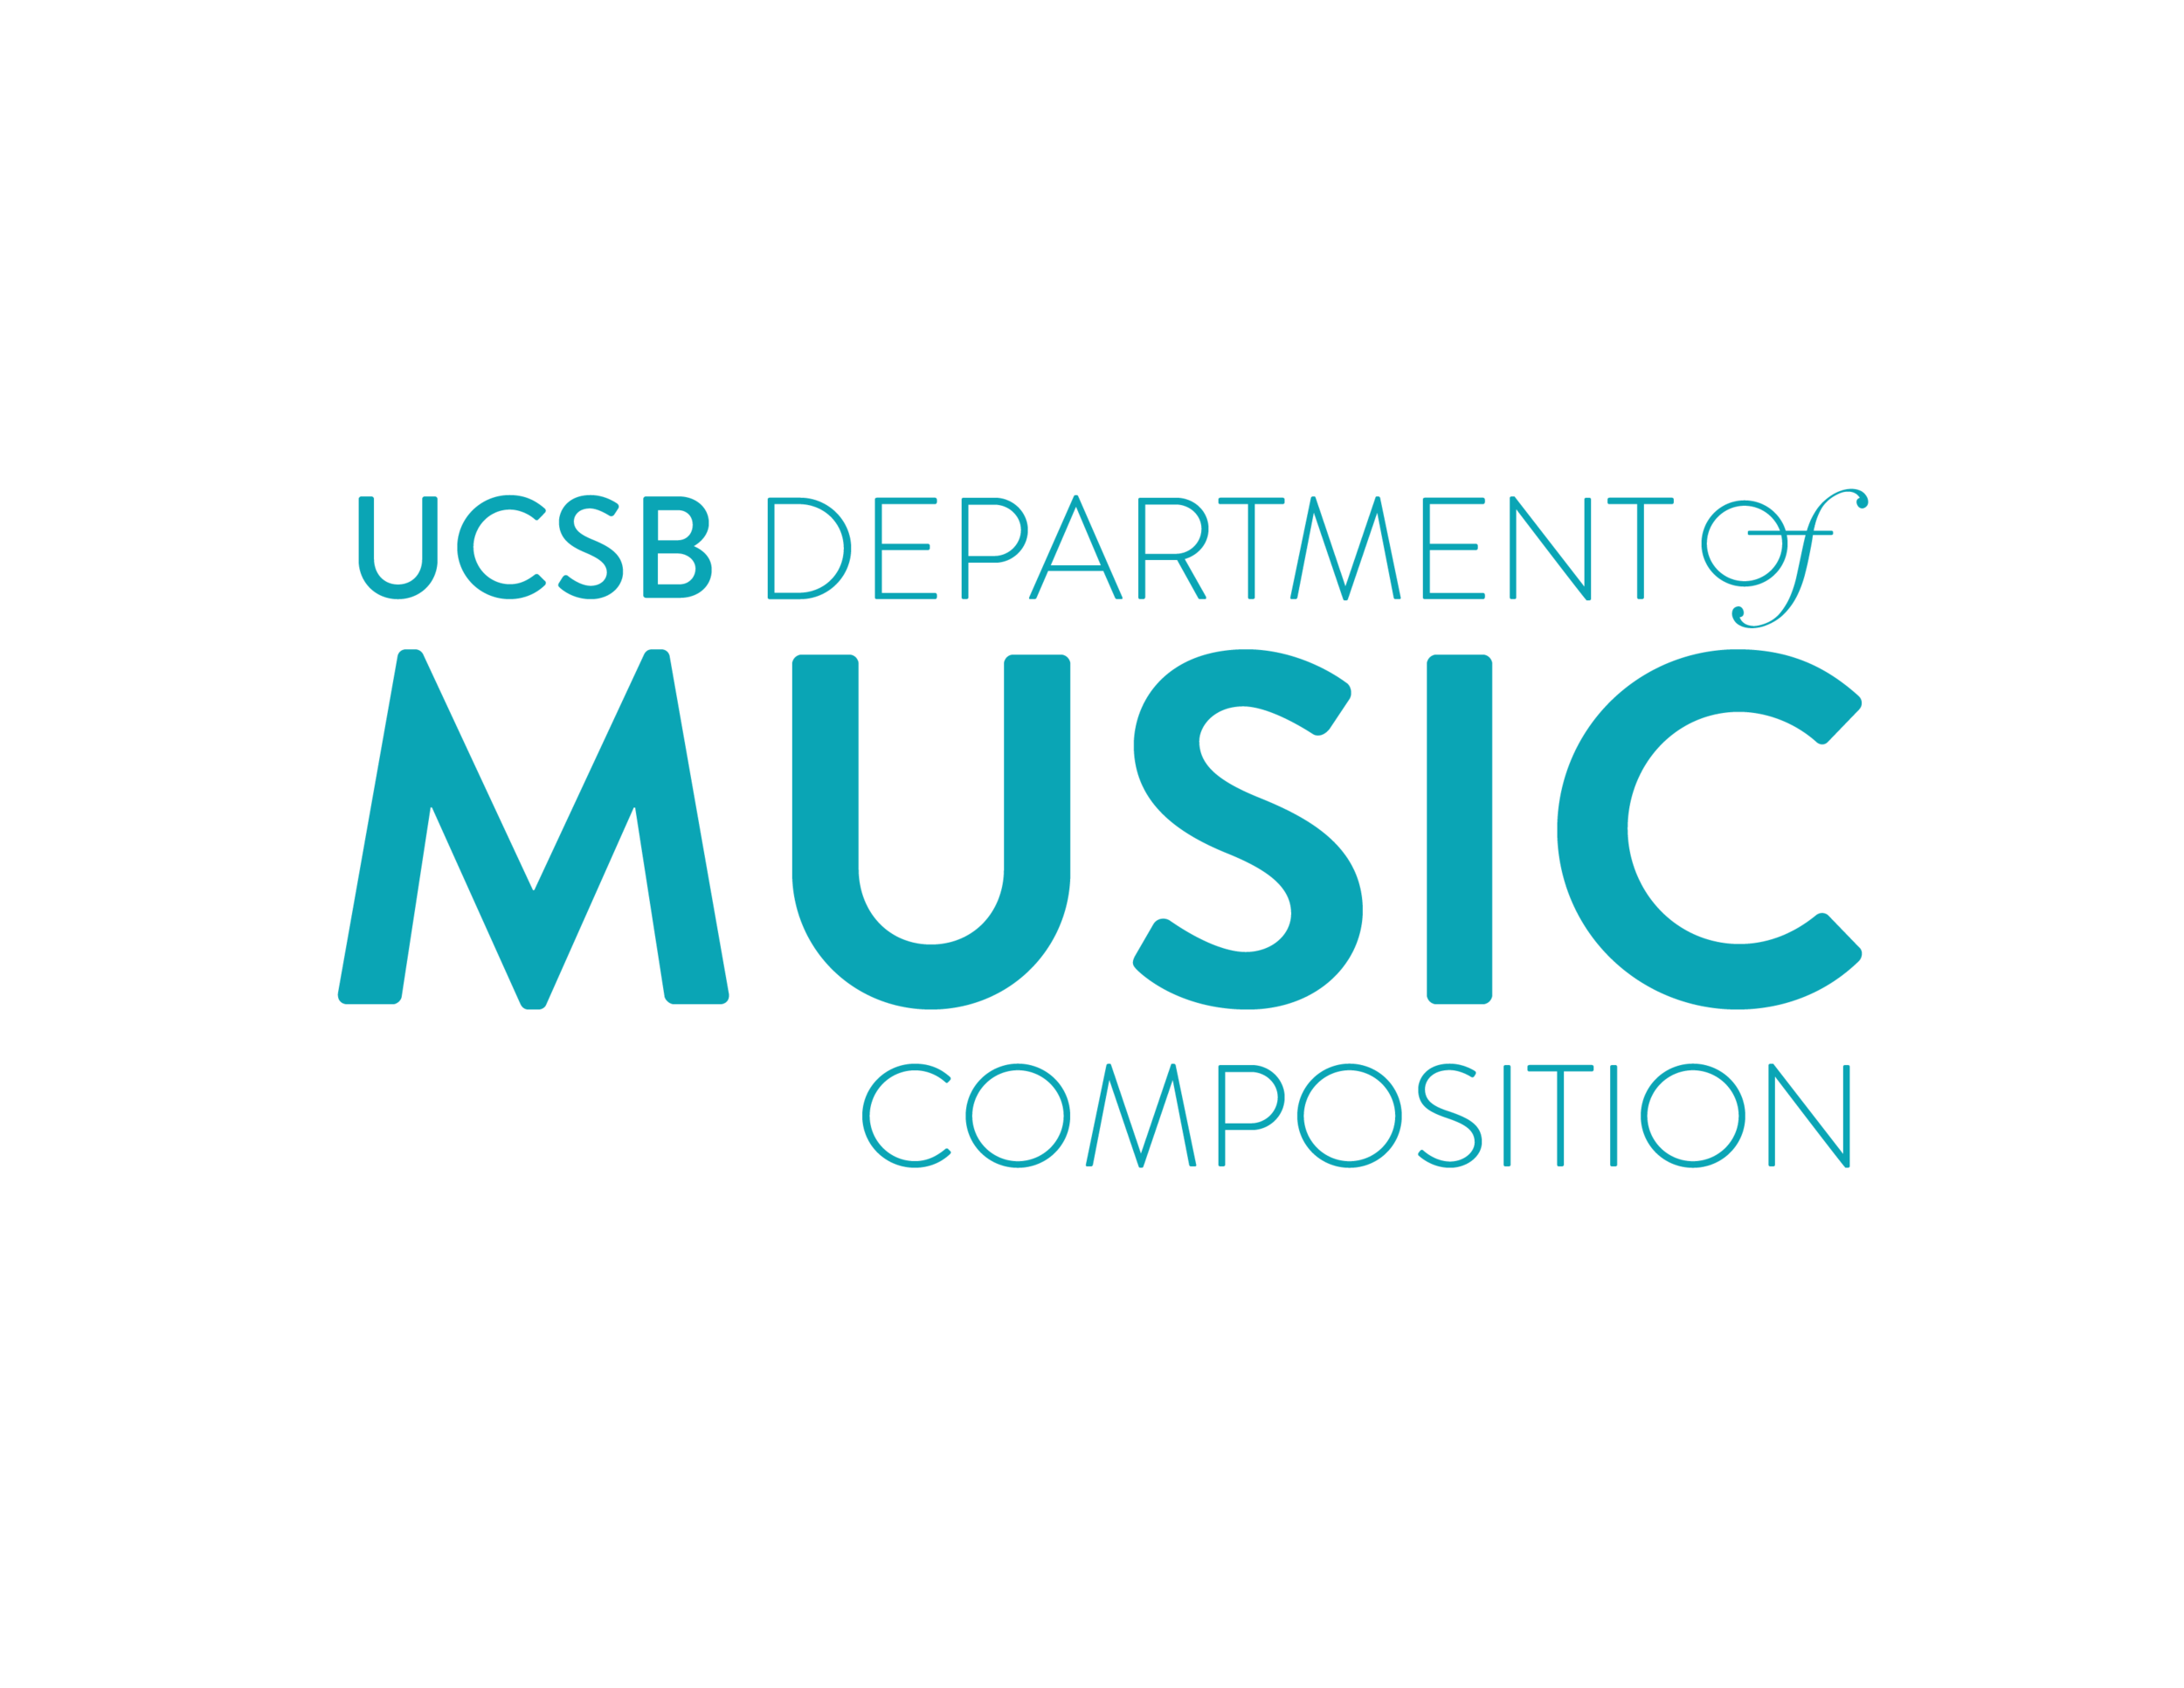 ucsb guidelines new logo and font use FINAL-10.png